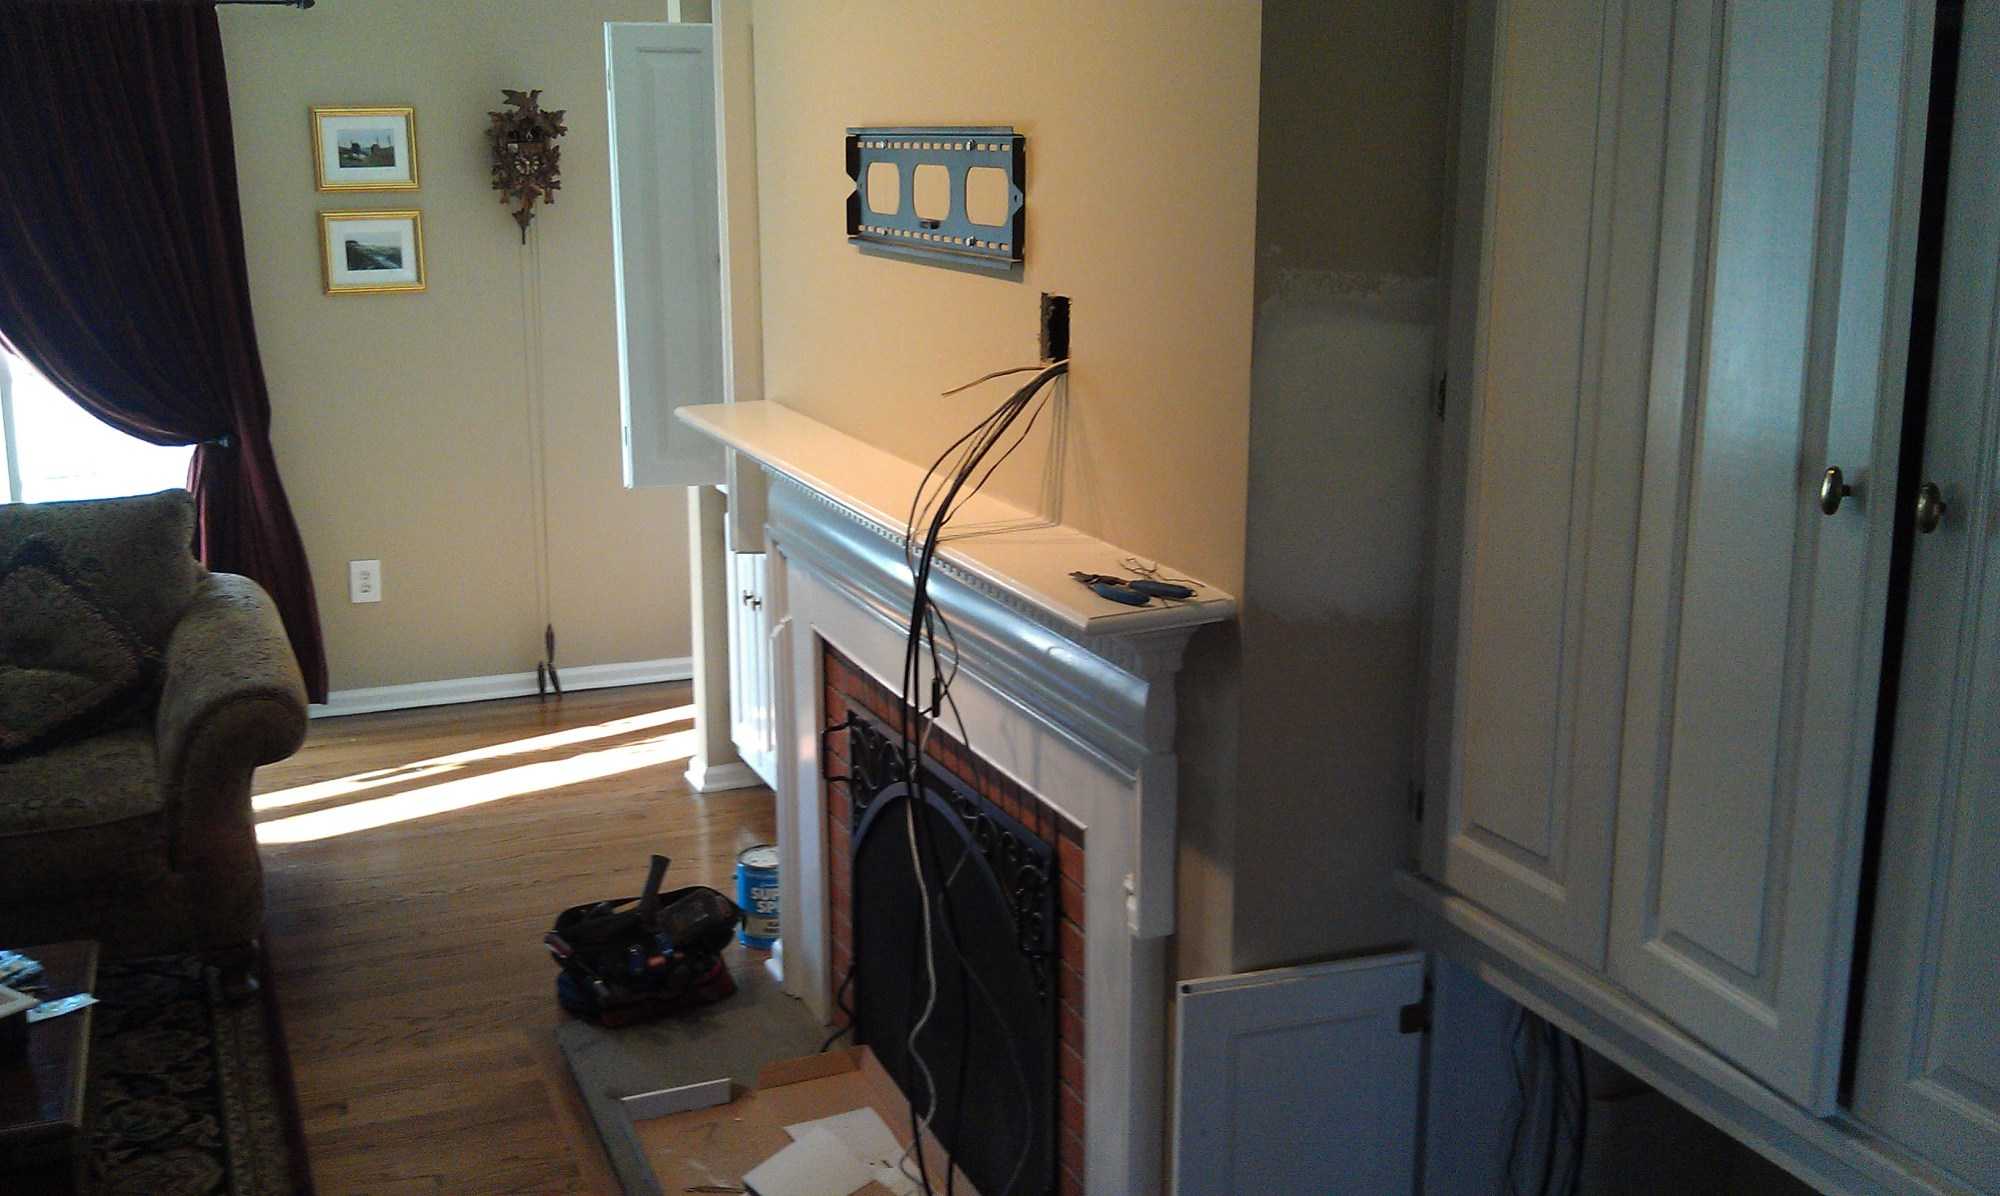 hight resolution of wallingford ct lg tv over fireplace with wires concealed and ir repeater kit 11